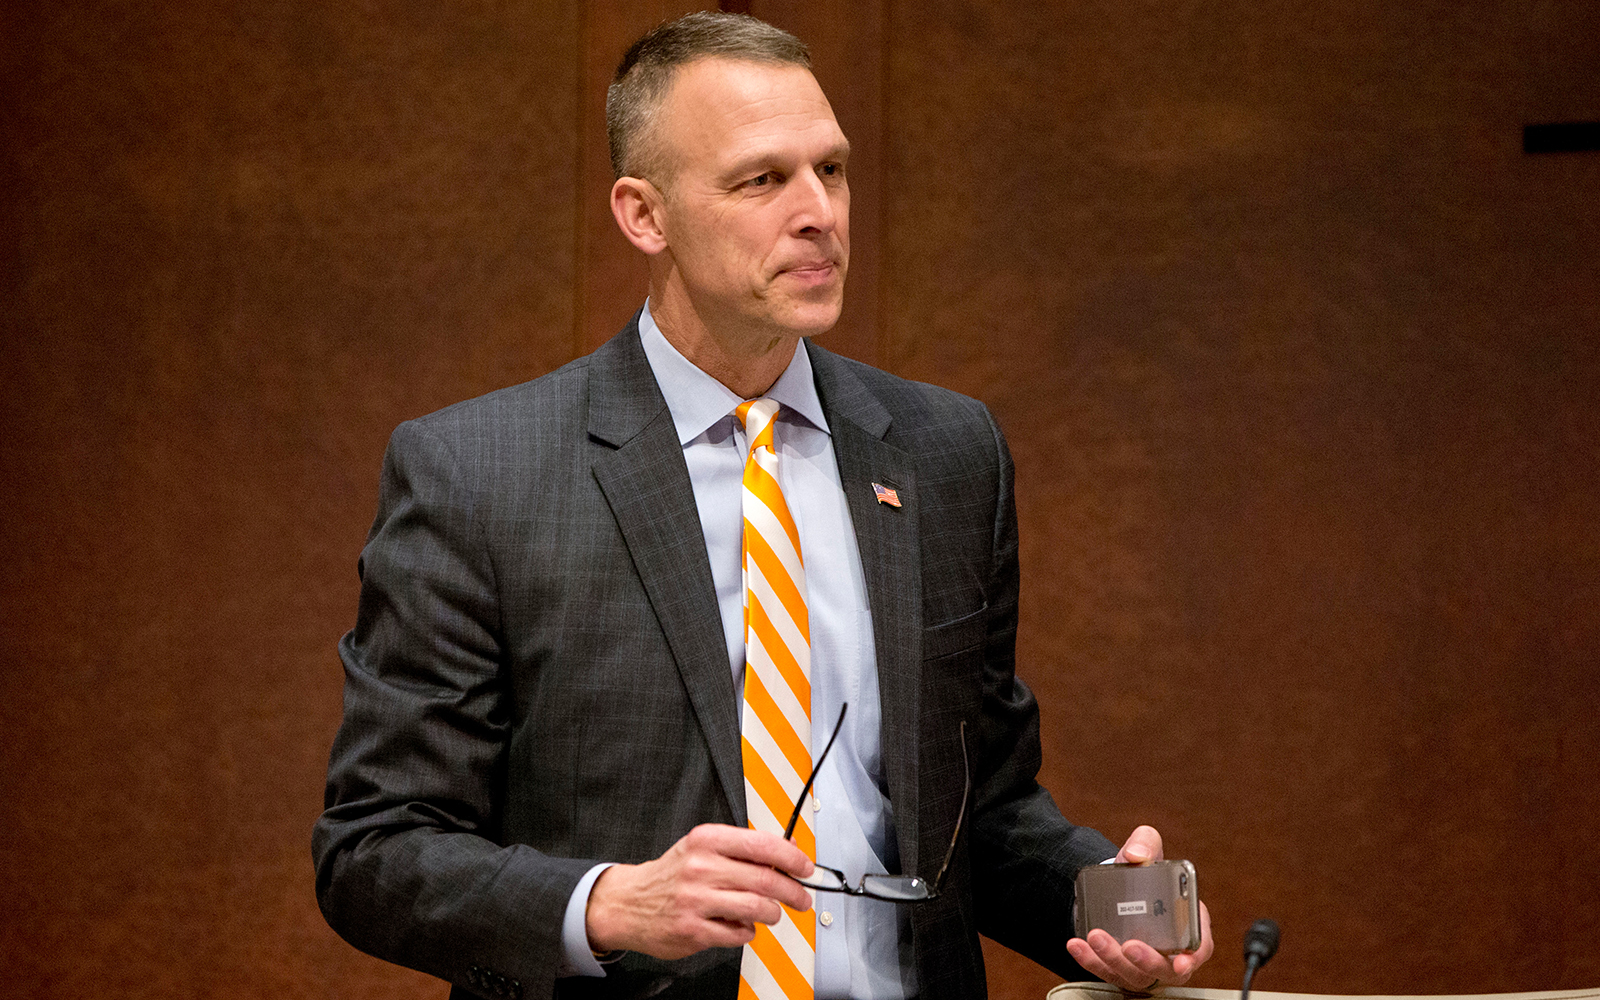 Congressman still showing off bogus pro-Israel award from Sacha Baron Cohen